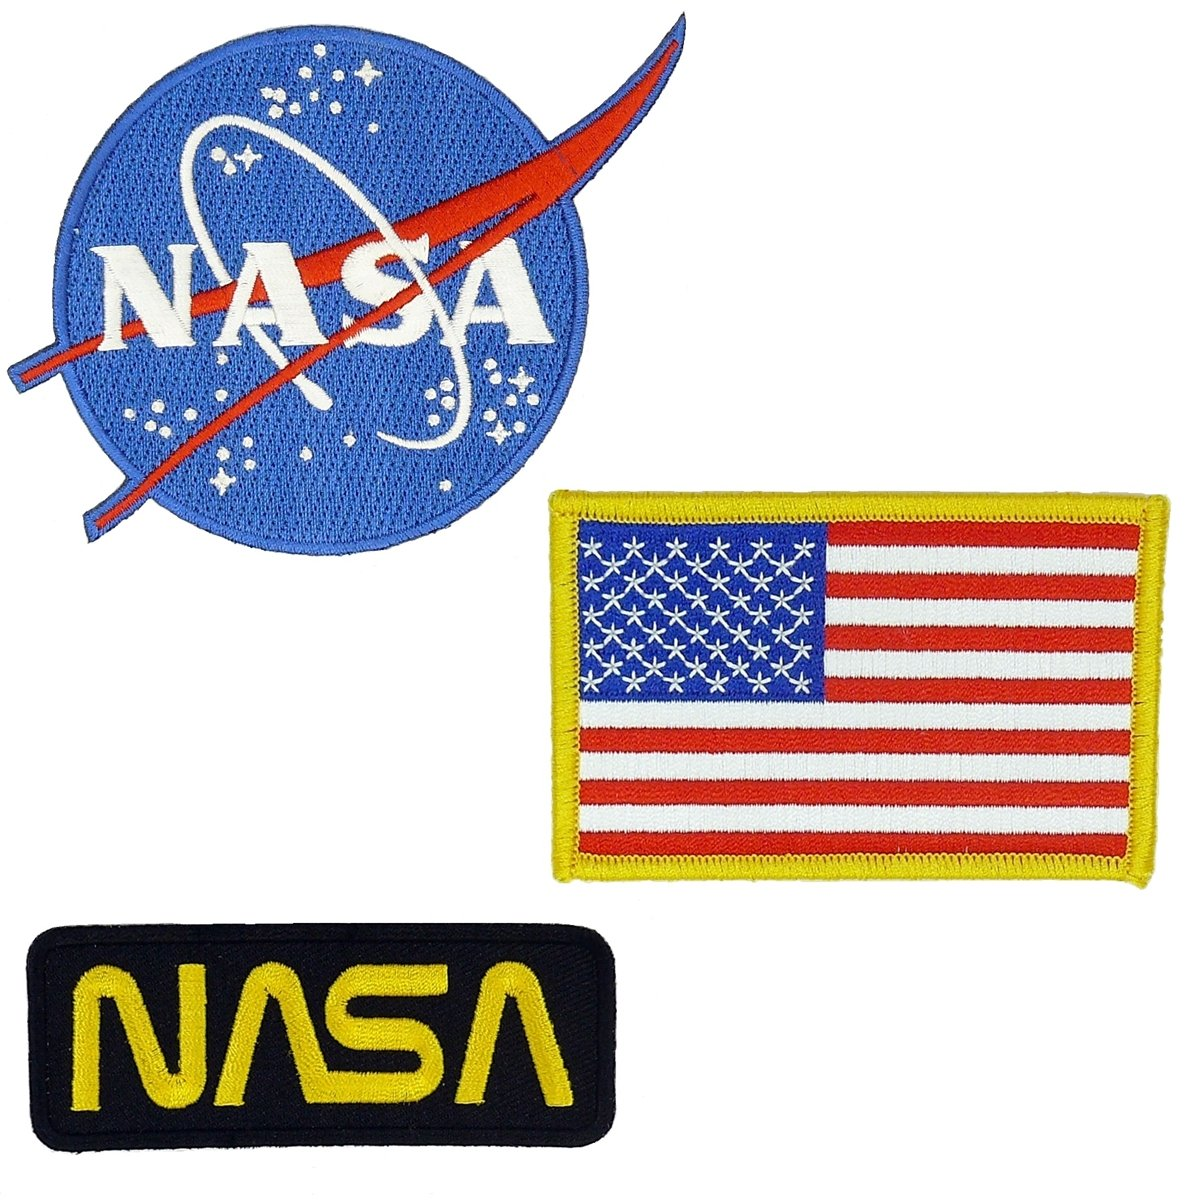 Nasa Blue Logo USA Flag Nasa Black/Gold Vector Space Shuttle Jacket DIY Embroidered Halloween Costume Badge Set of 3 Easy Iron/Sew On Patch Mr Patches NSB-2